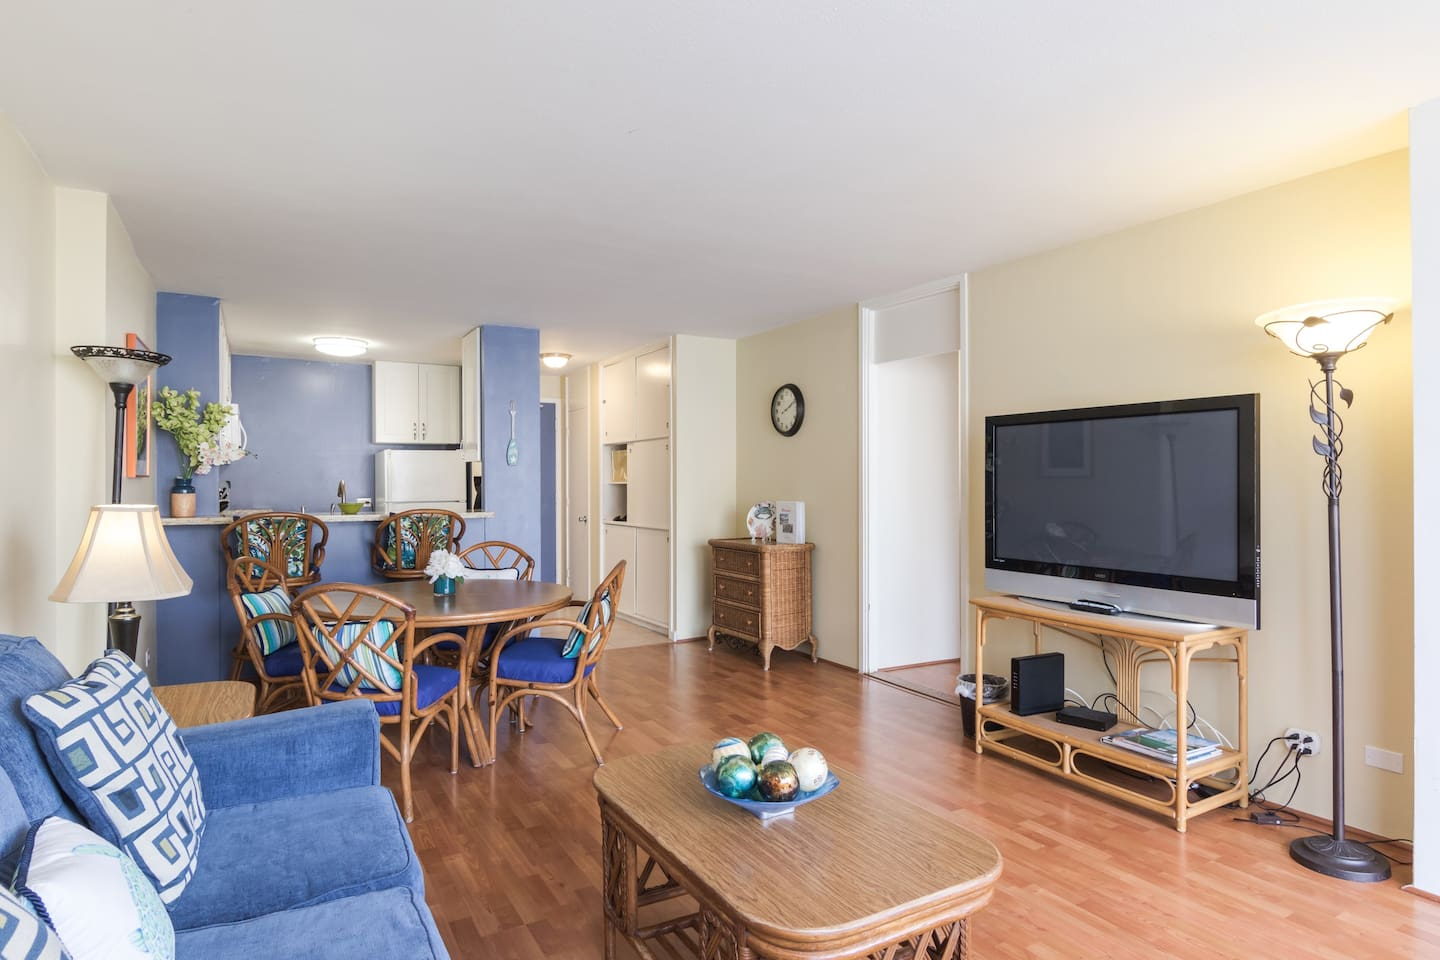 Spacious, airy, and bright with central a/c. My guests can feel right at home here.